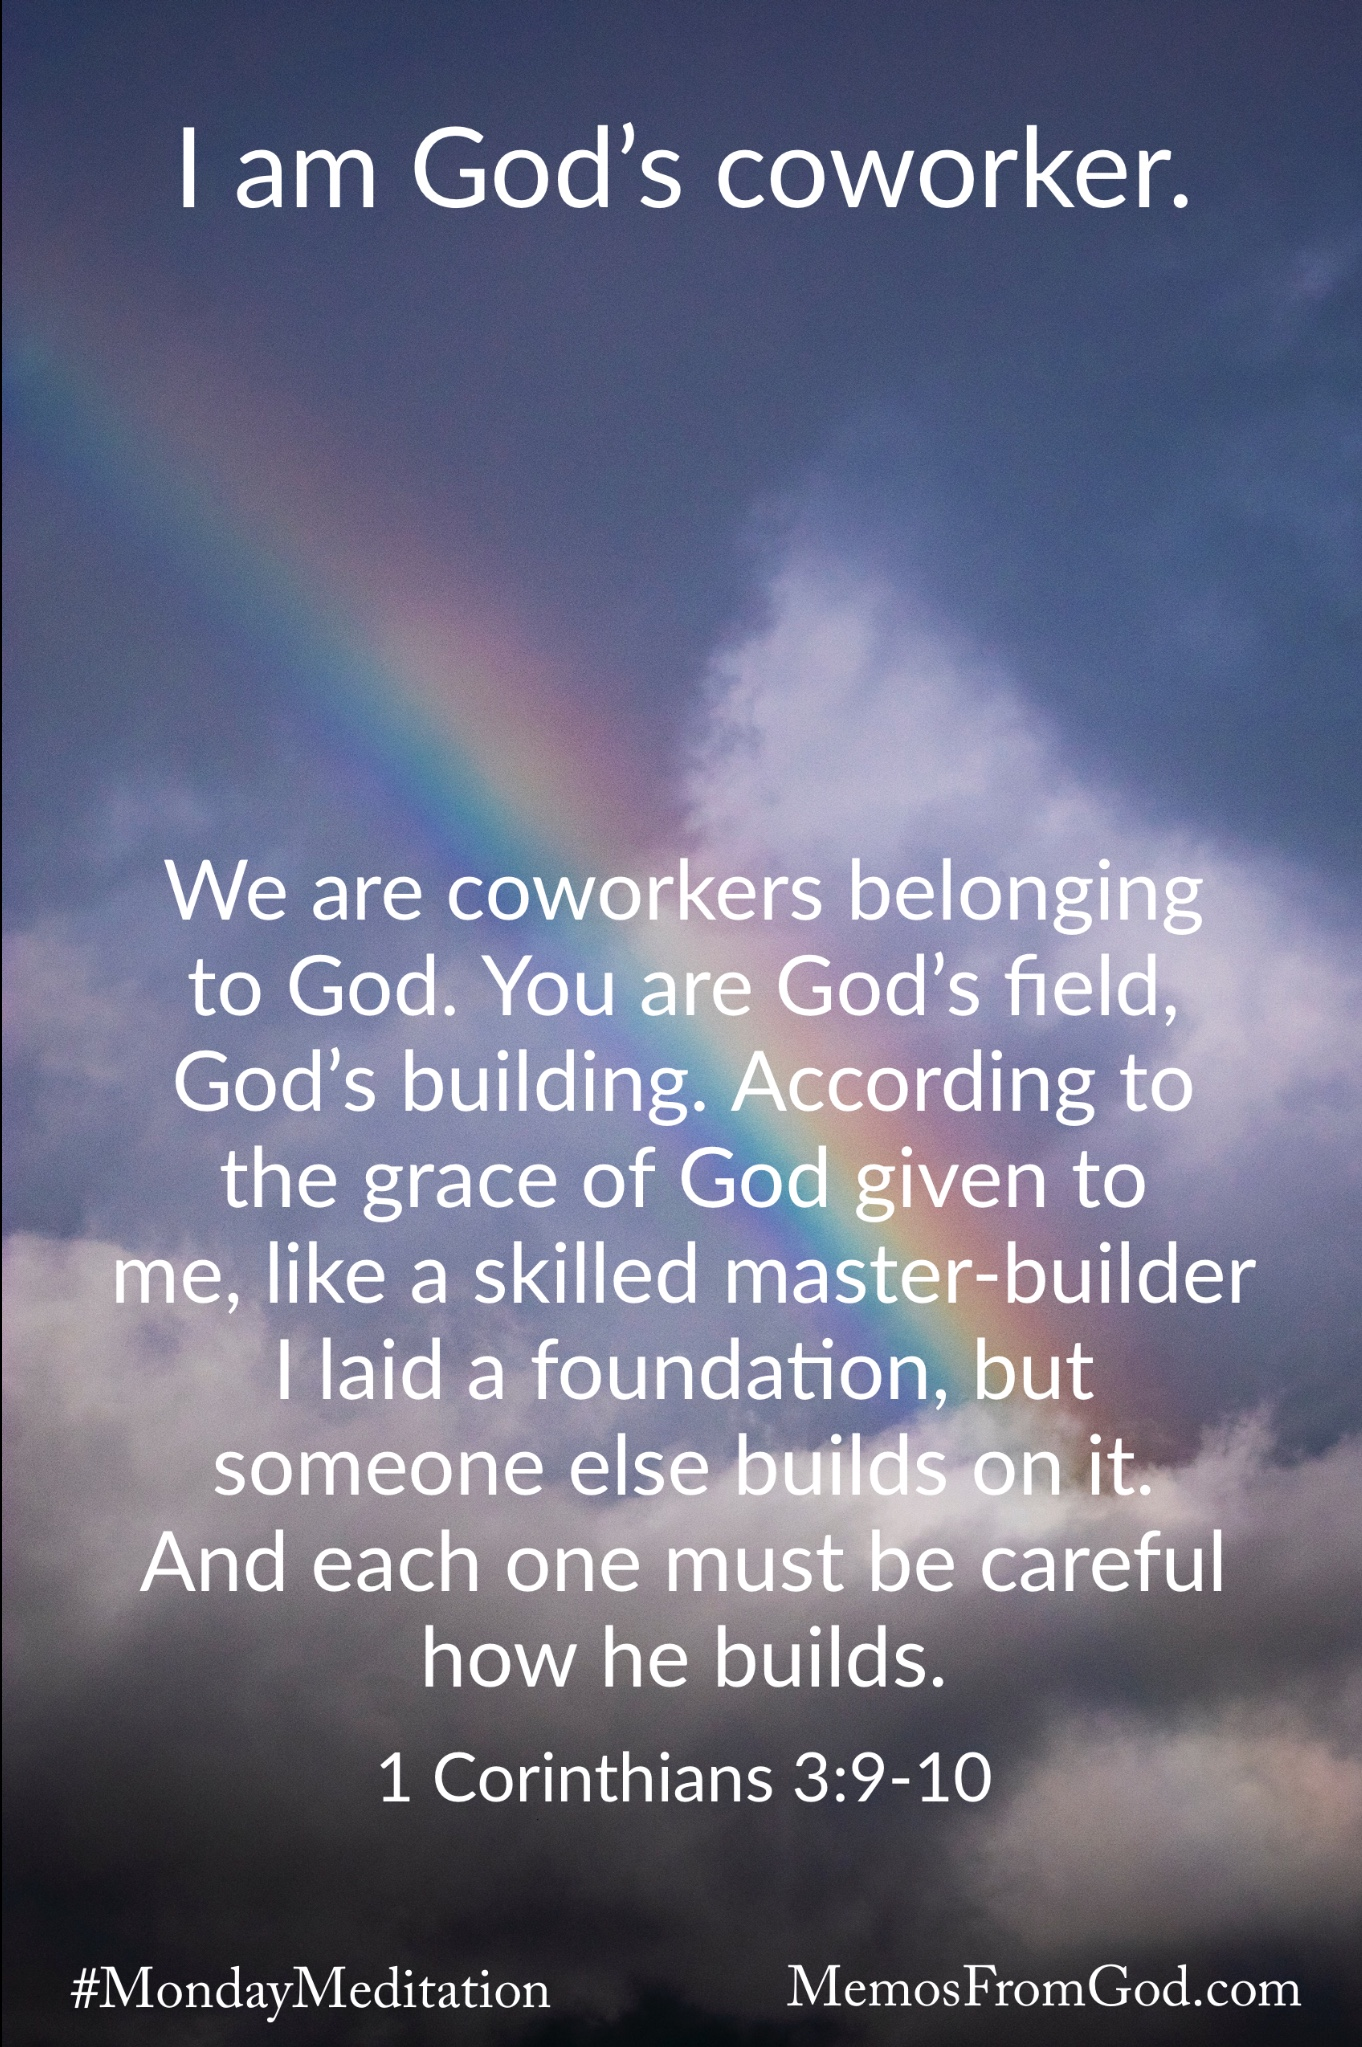 A rainbow shining through a grey sky with dark clouds. Caption: We are coworkers belonging to God. You are God's field, God's building. According to the grace of God given to me, like a skilled master-builder I laid a foundation, but someone else builds on it. And each one must be careful how he builds. 1 Corinthians 3:9-10